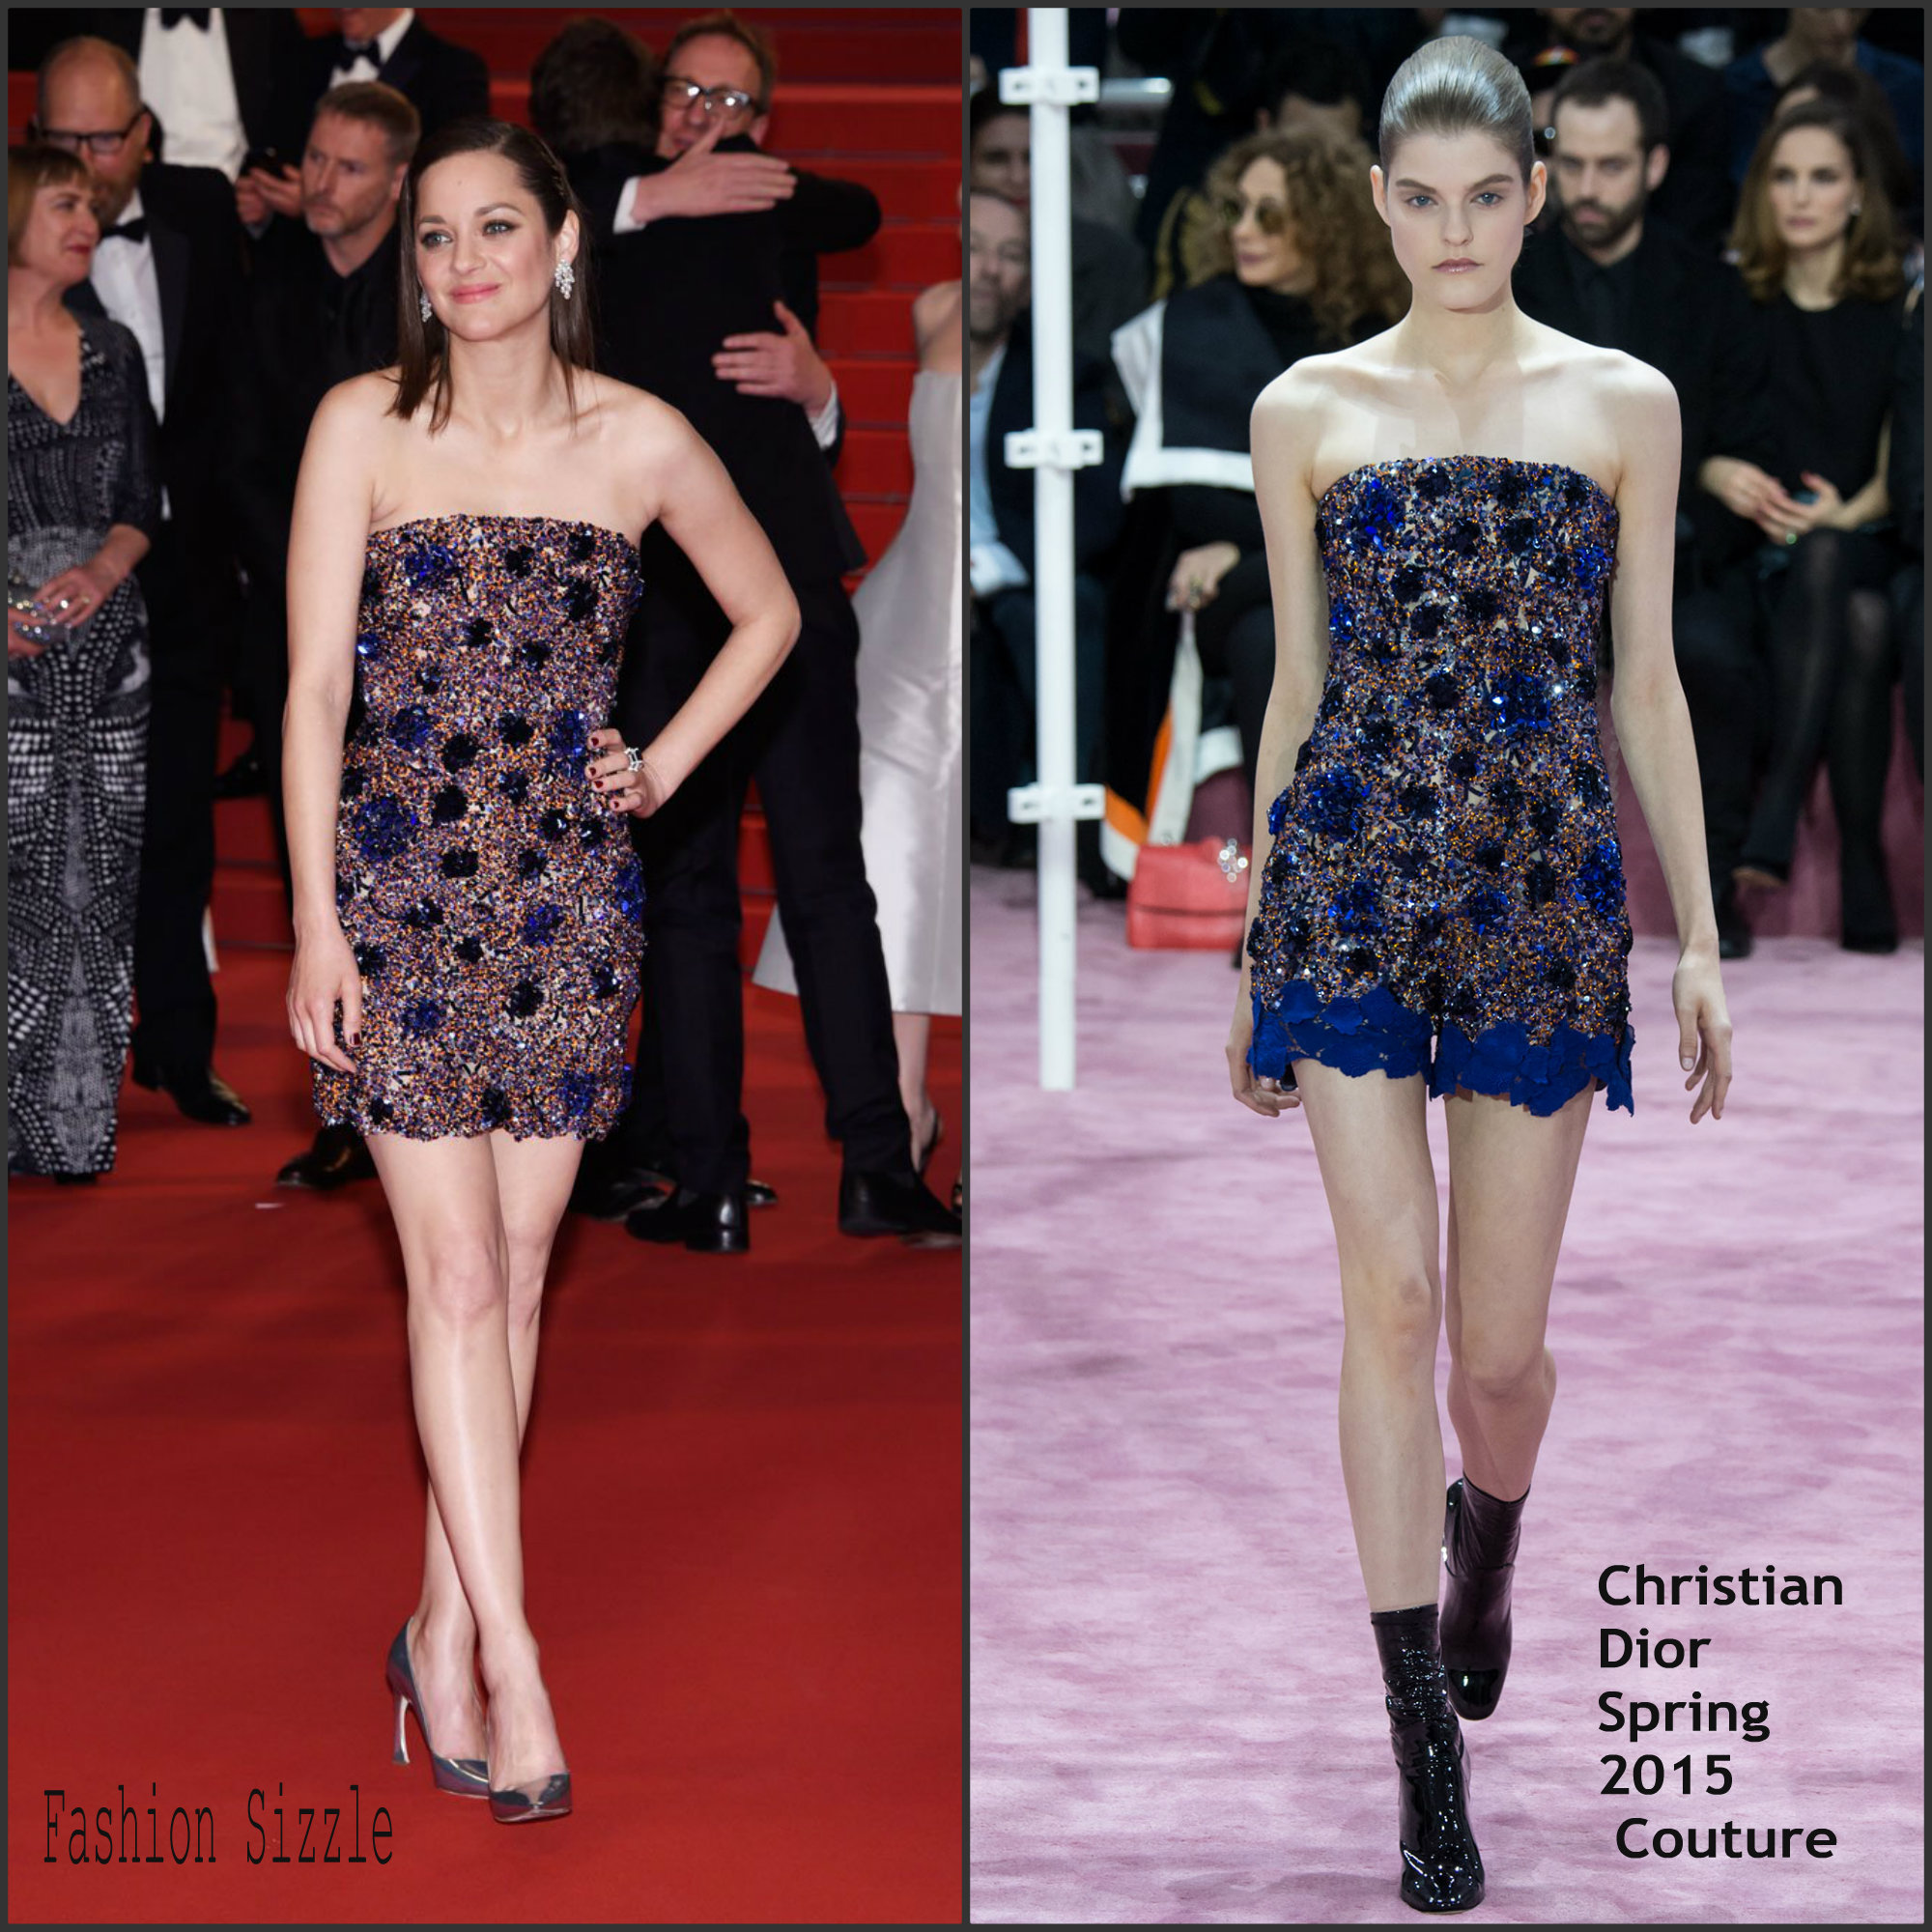 marion-cotillard-in-christian-dior-couture-at-the-macbeth-cannes-film-festival-premiere